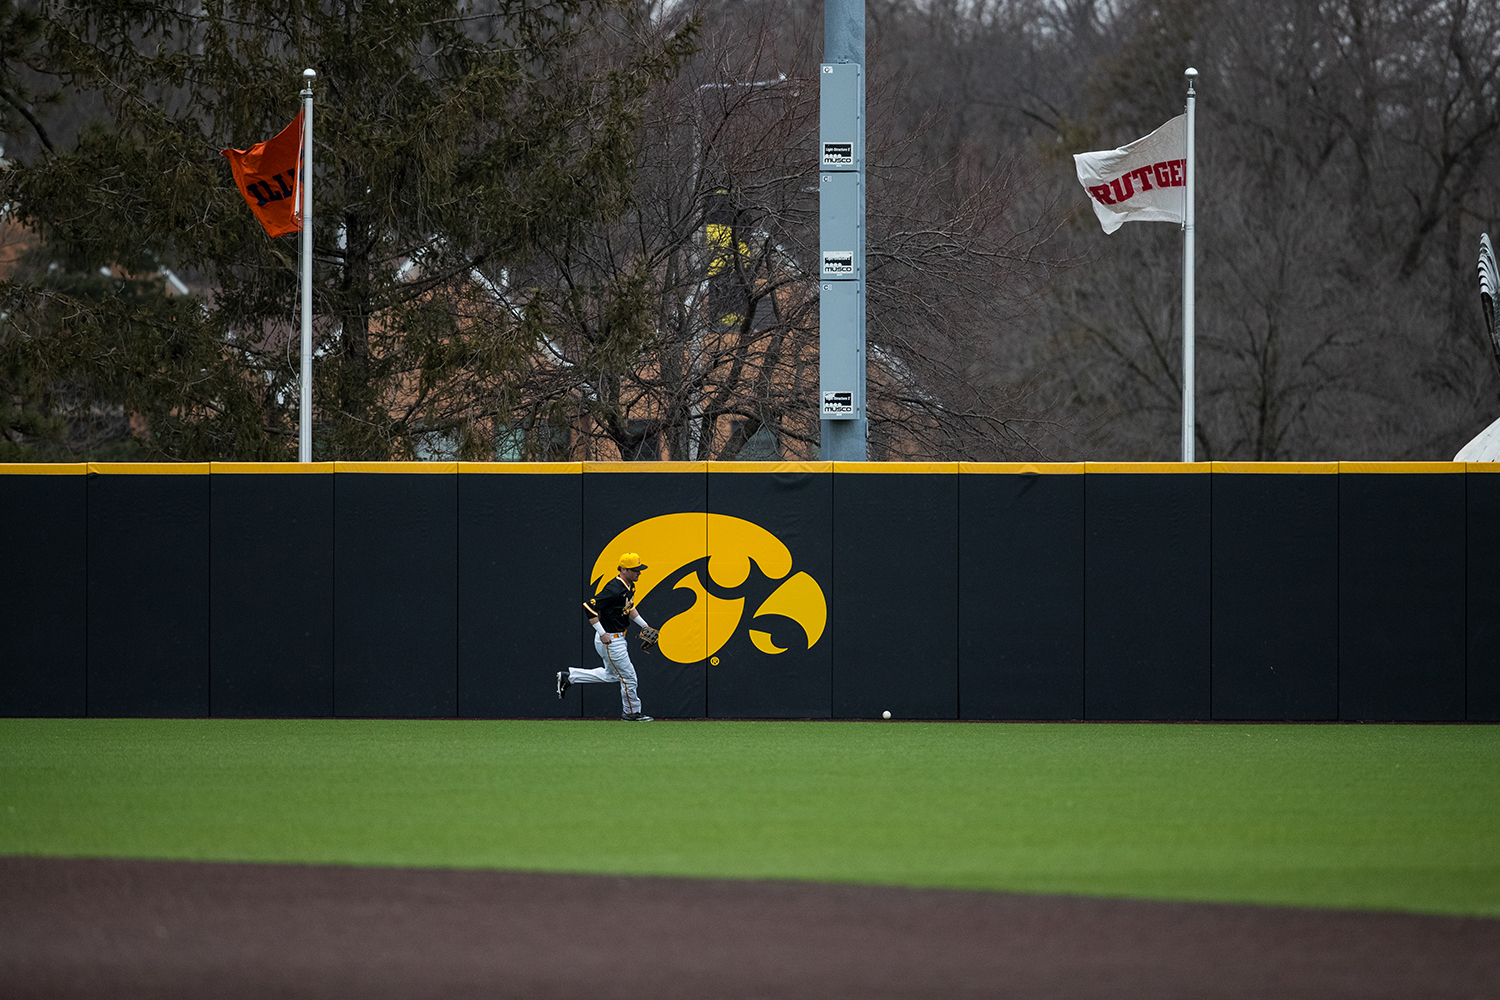 Iowa%27s+Chris+Whelan+goes+to+a+recover+the+ball+in+the+outfield+during+a+baseball+game+against+Illinois+State+on+Wednesday%2C+Apr.+3%2C+2019.+The+Hawkeyes+lost+to+the+Redbirds+11-6.+%28Roman+Slabach%2FThe+Daily+Iowan%29